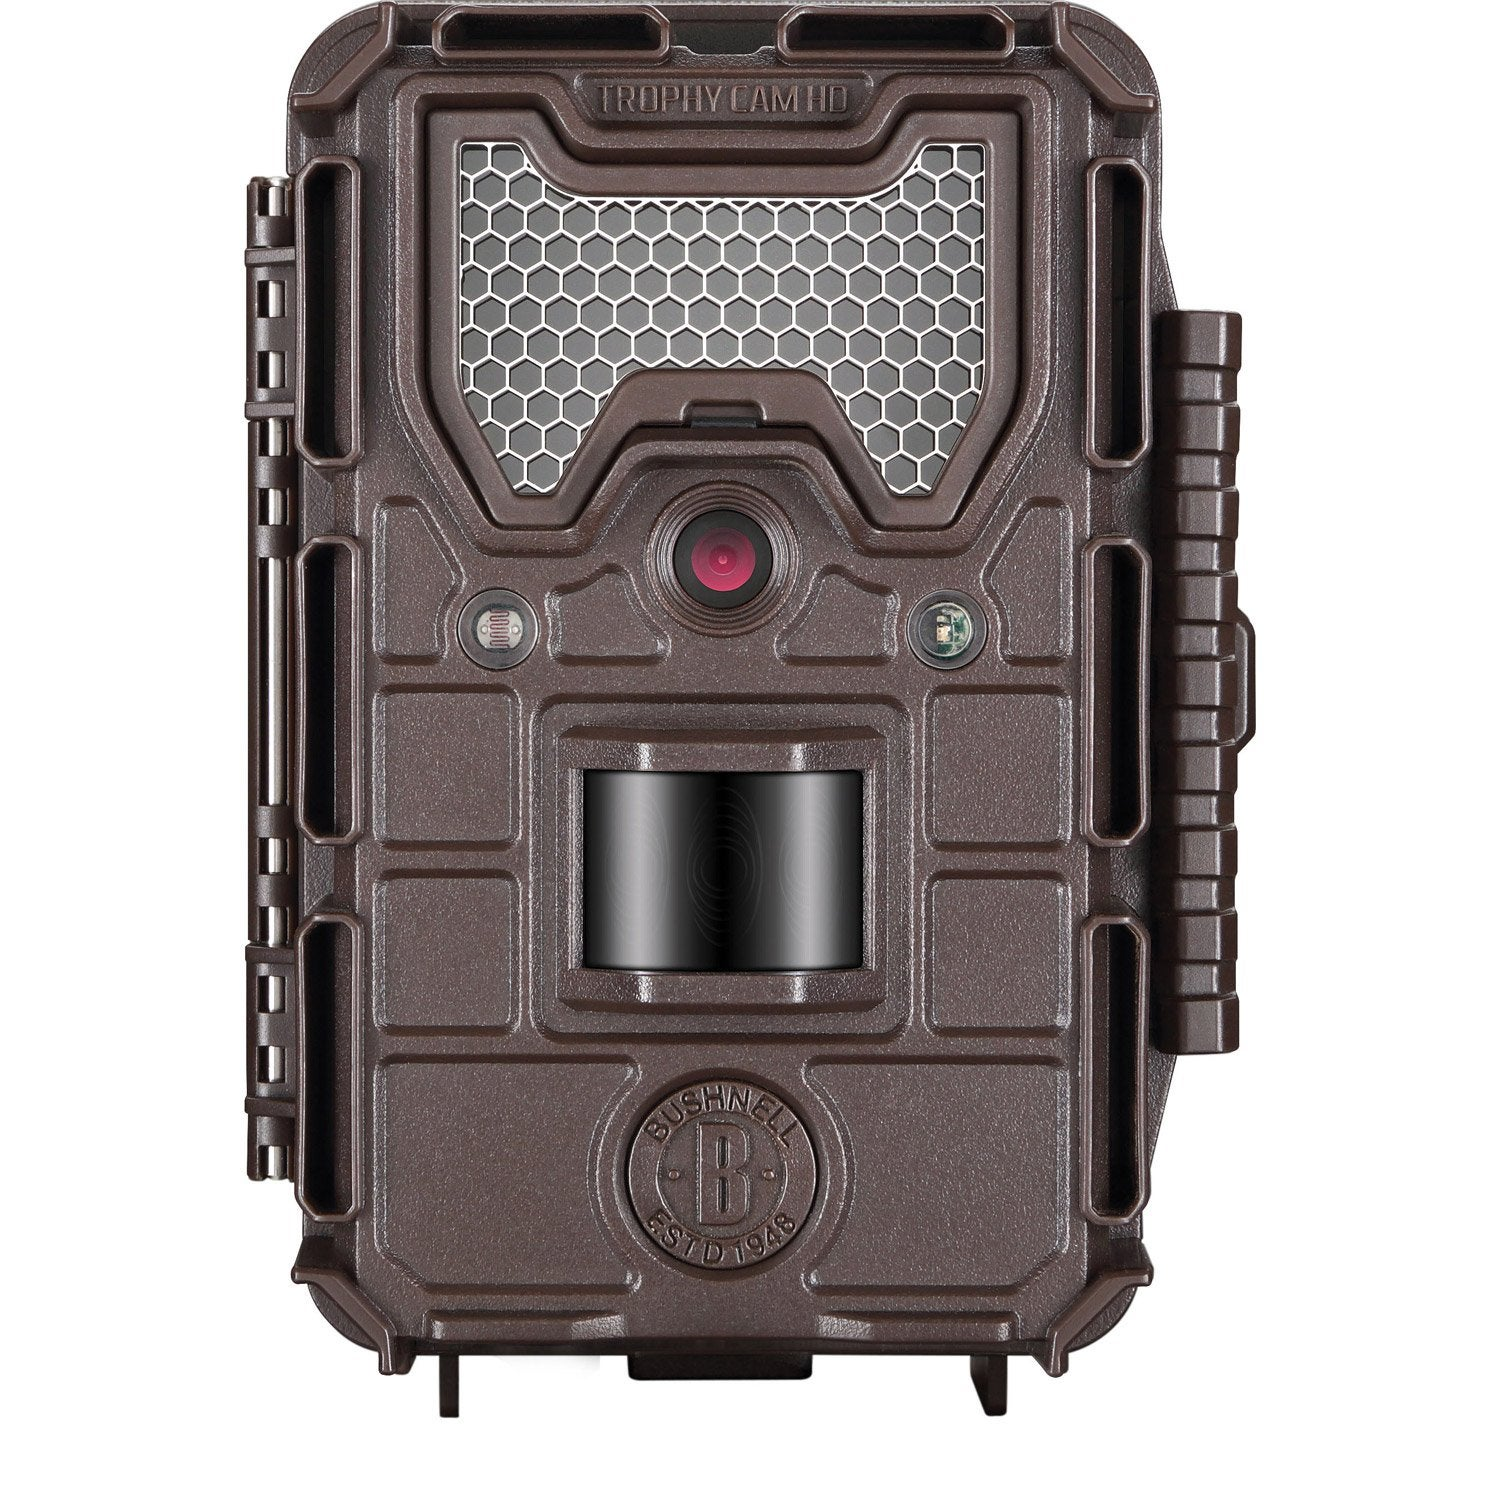 Cam ra connect e trophy essential bushnell leroy merlin - Camera factice leroy merlin ...